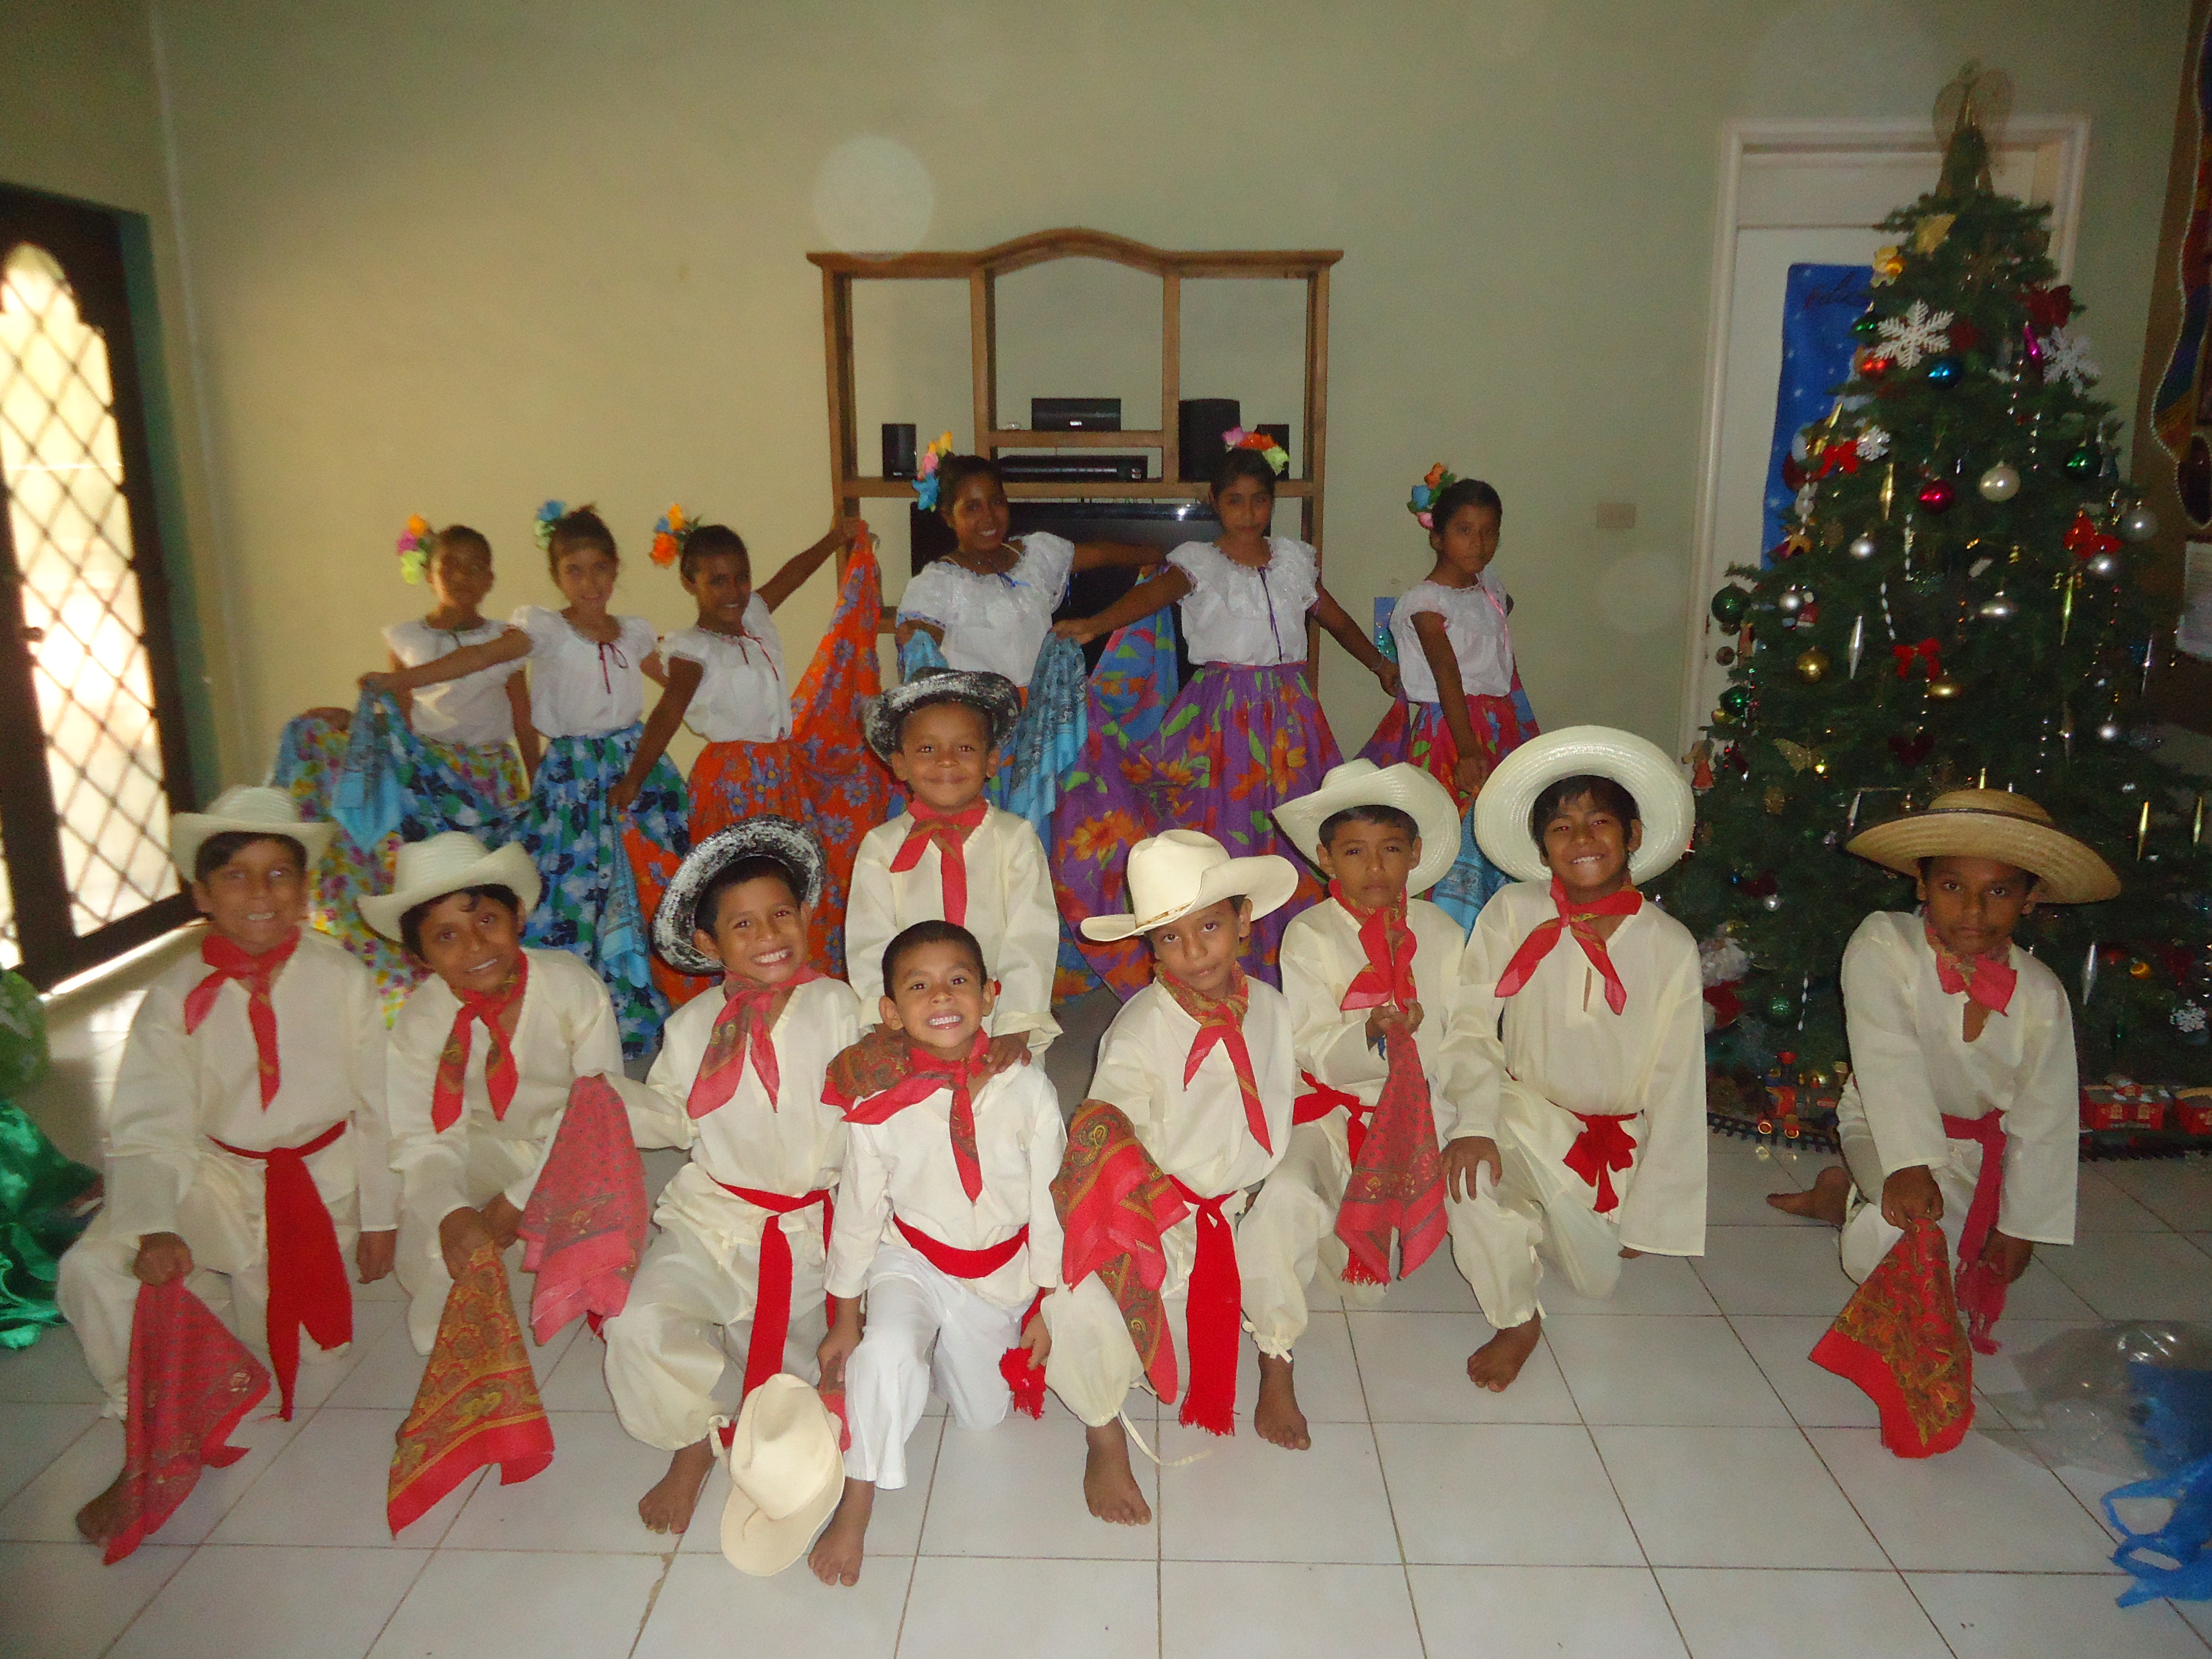 Mexican dance performance during Christmas in 2012.